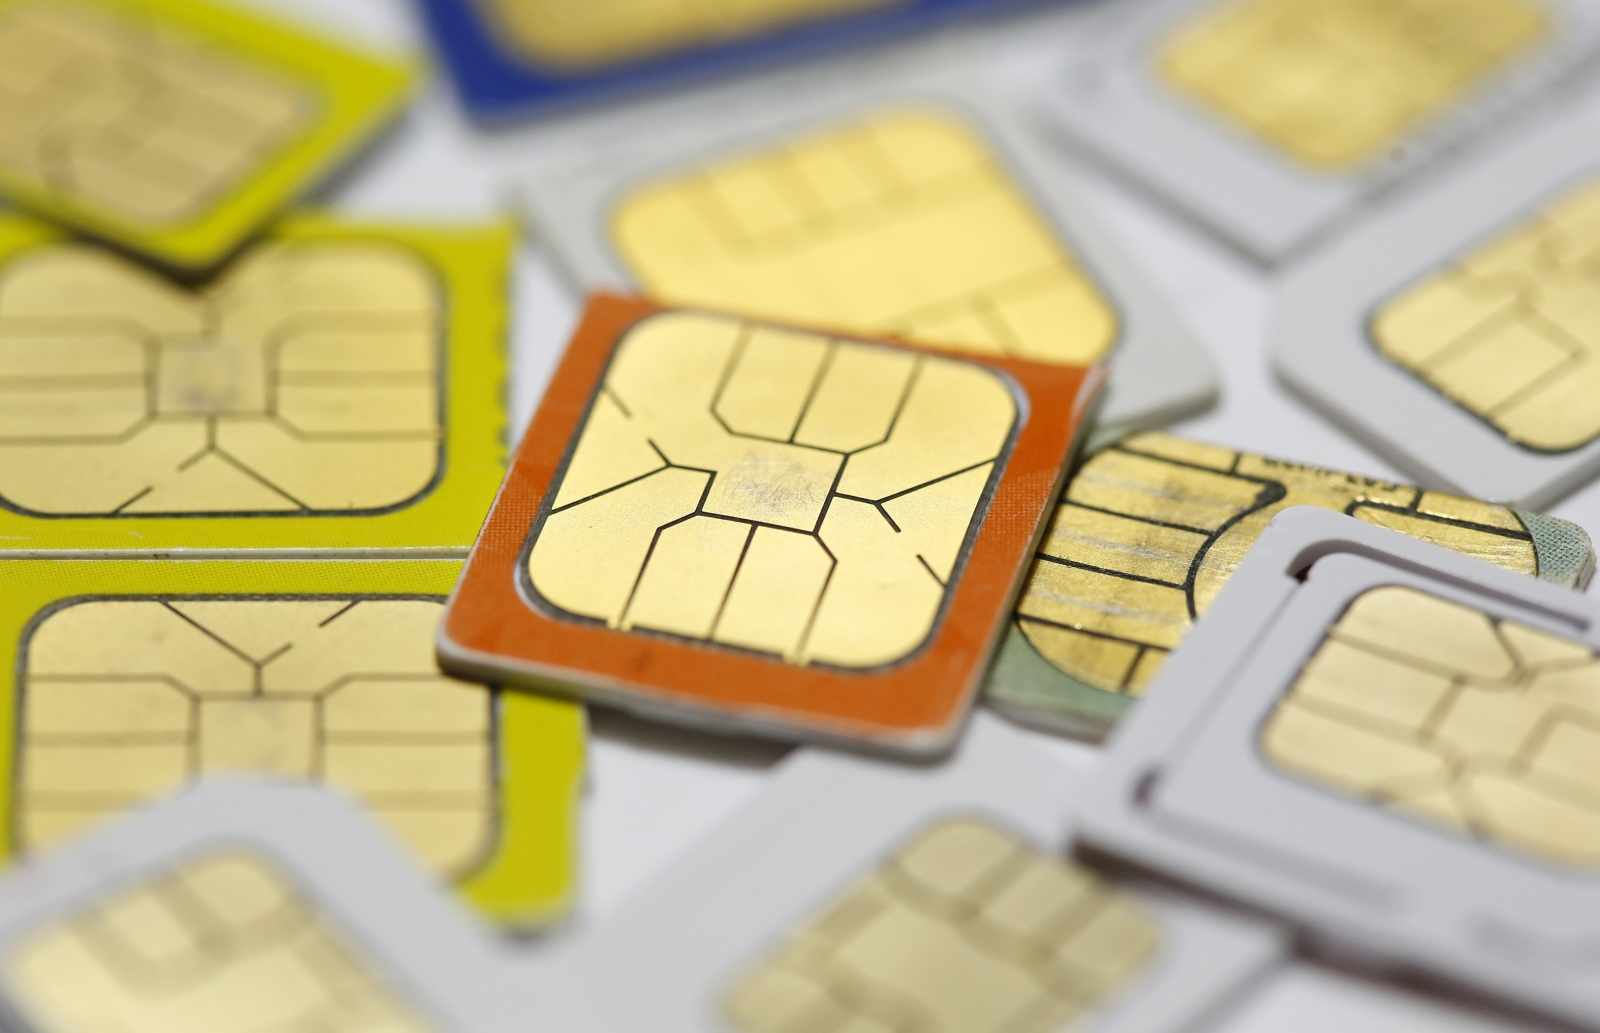 Apple and Samsung in talks to kill off SIM cards and replace them with e-SIM